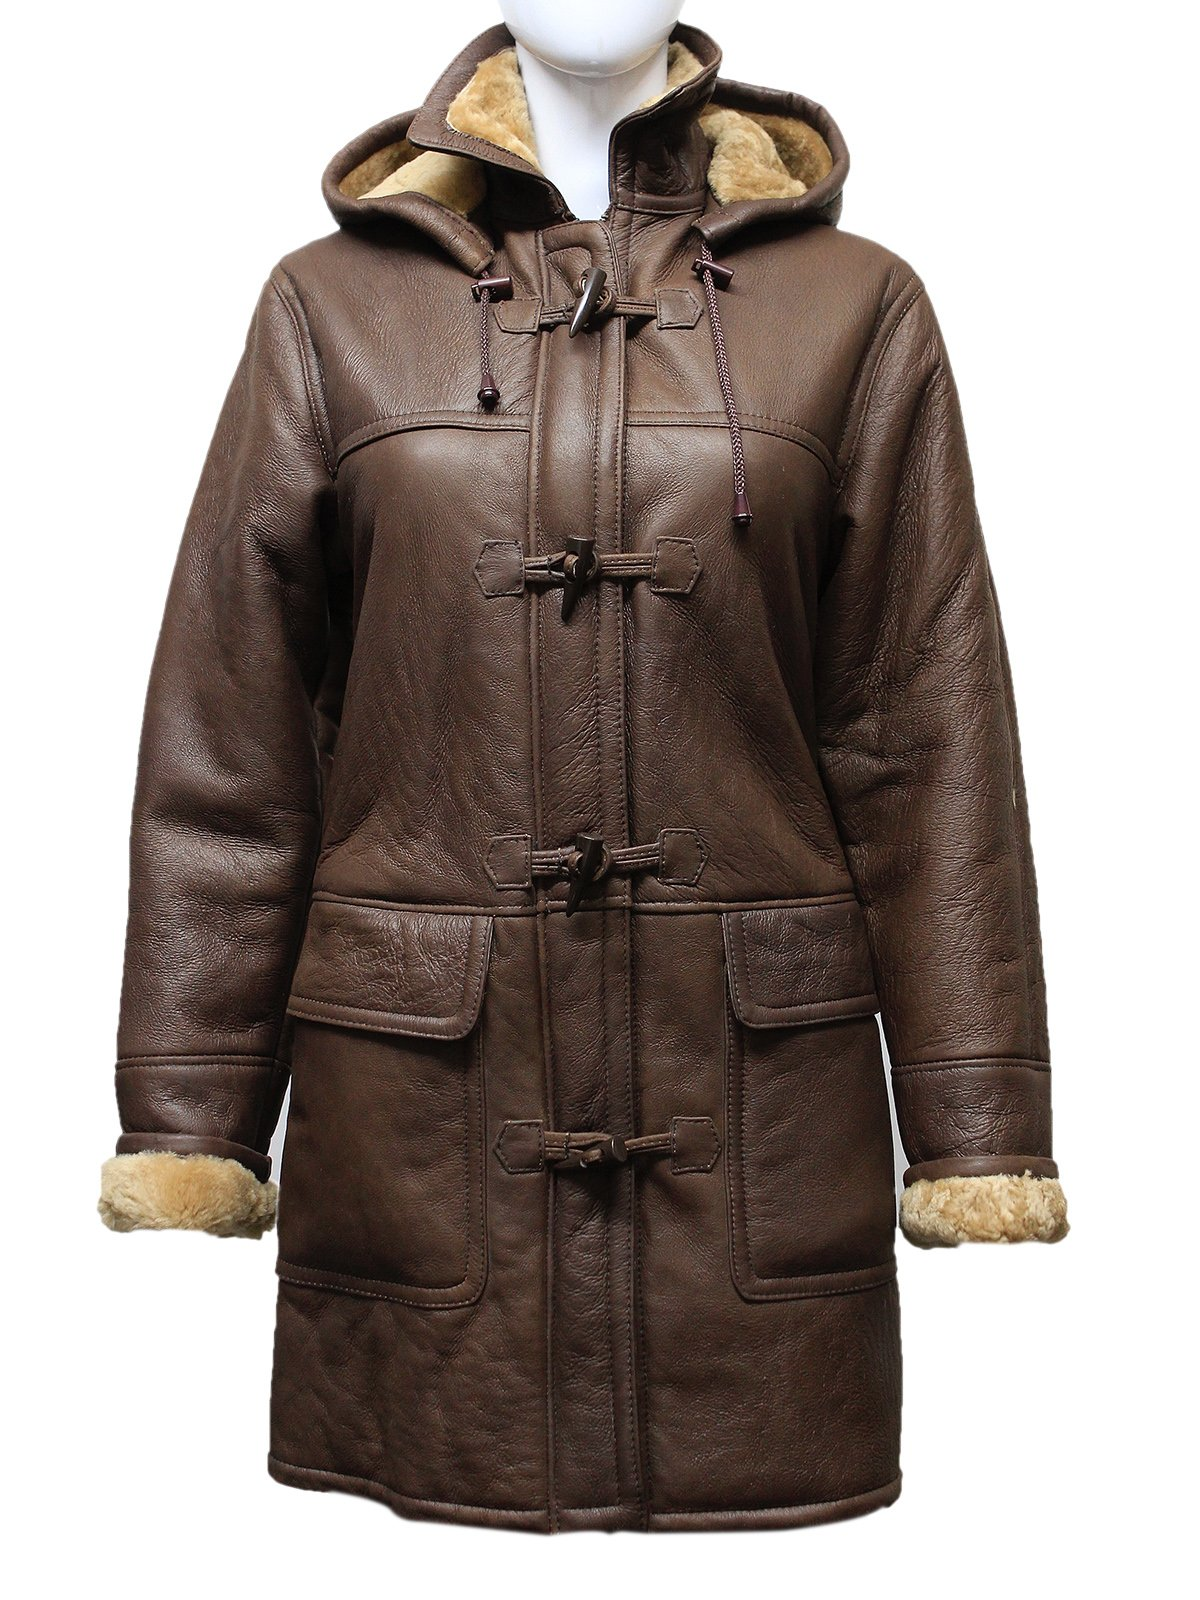 ABSY Ladies Brown New Smart Winter Warm Real Shearling Sheepskin Leather Duffel Coat With Removeable Hood (2X-Large 16)